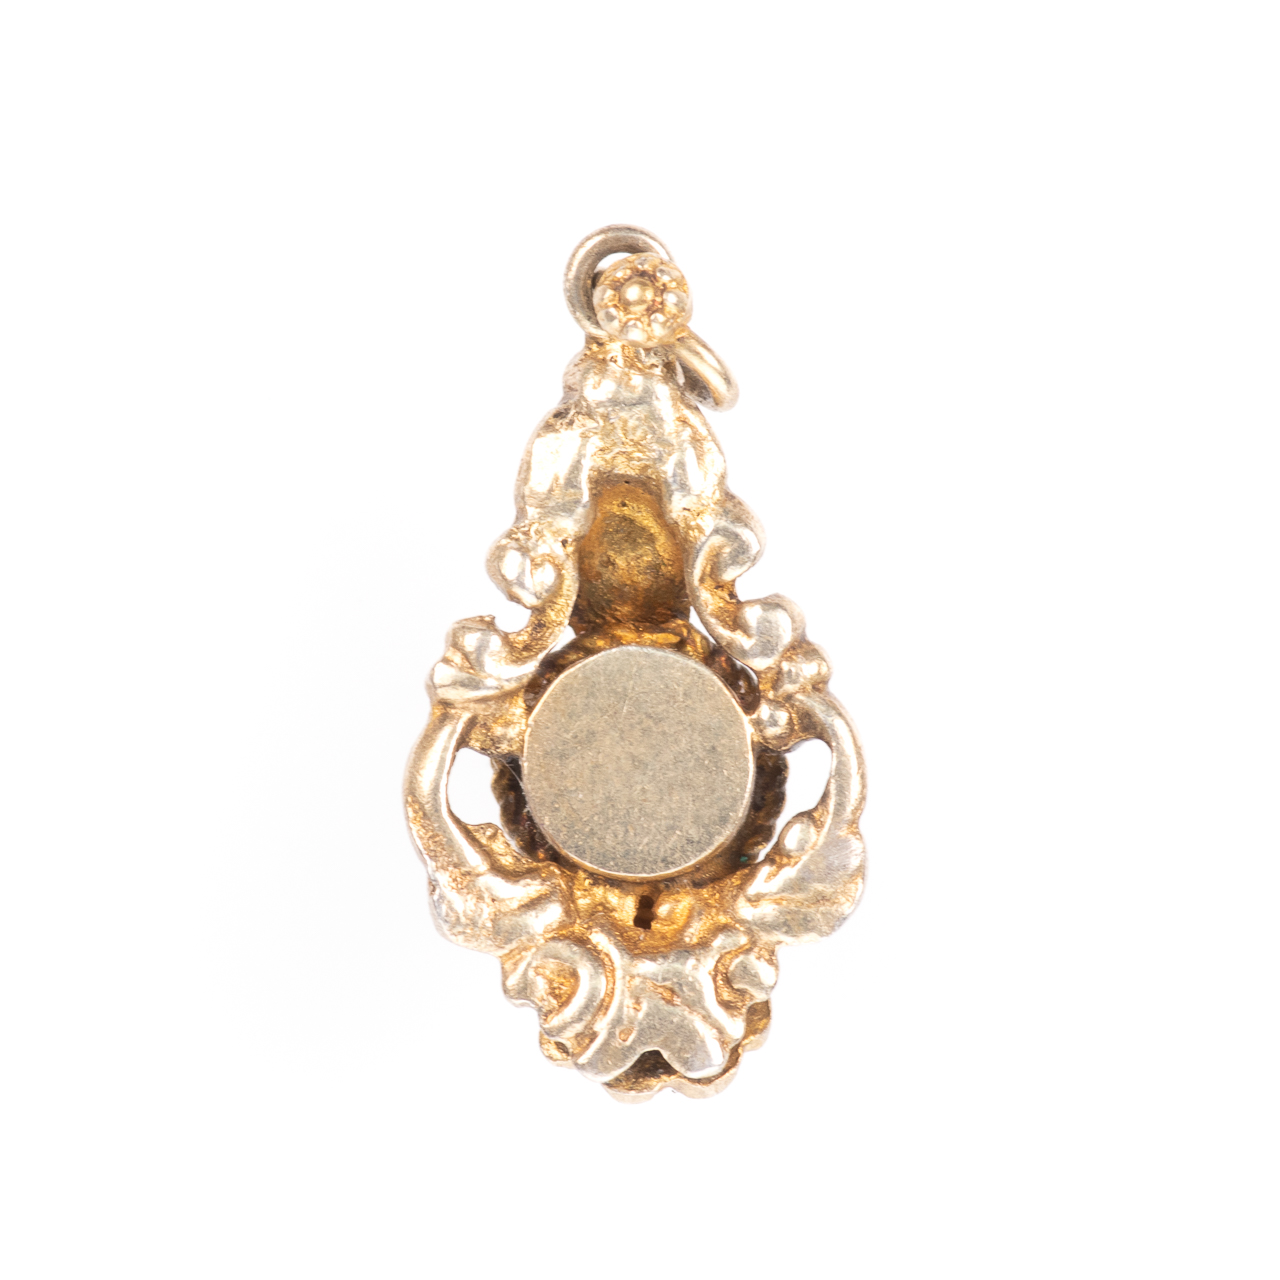 Momento Mori Pinchbeck Pearl & Banded Agate Victorian Pendant - Image 4 of 4